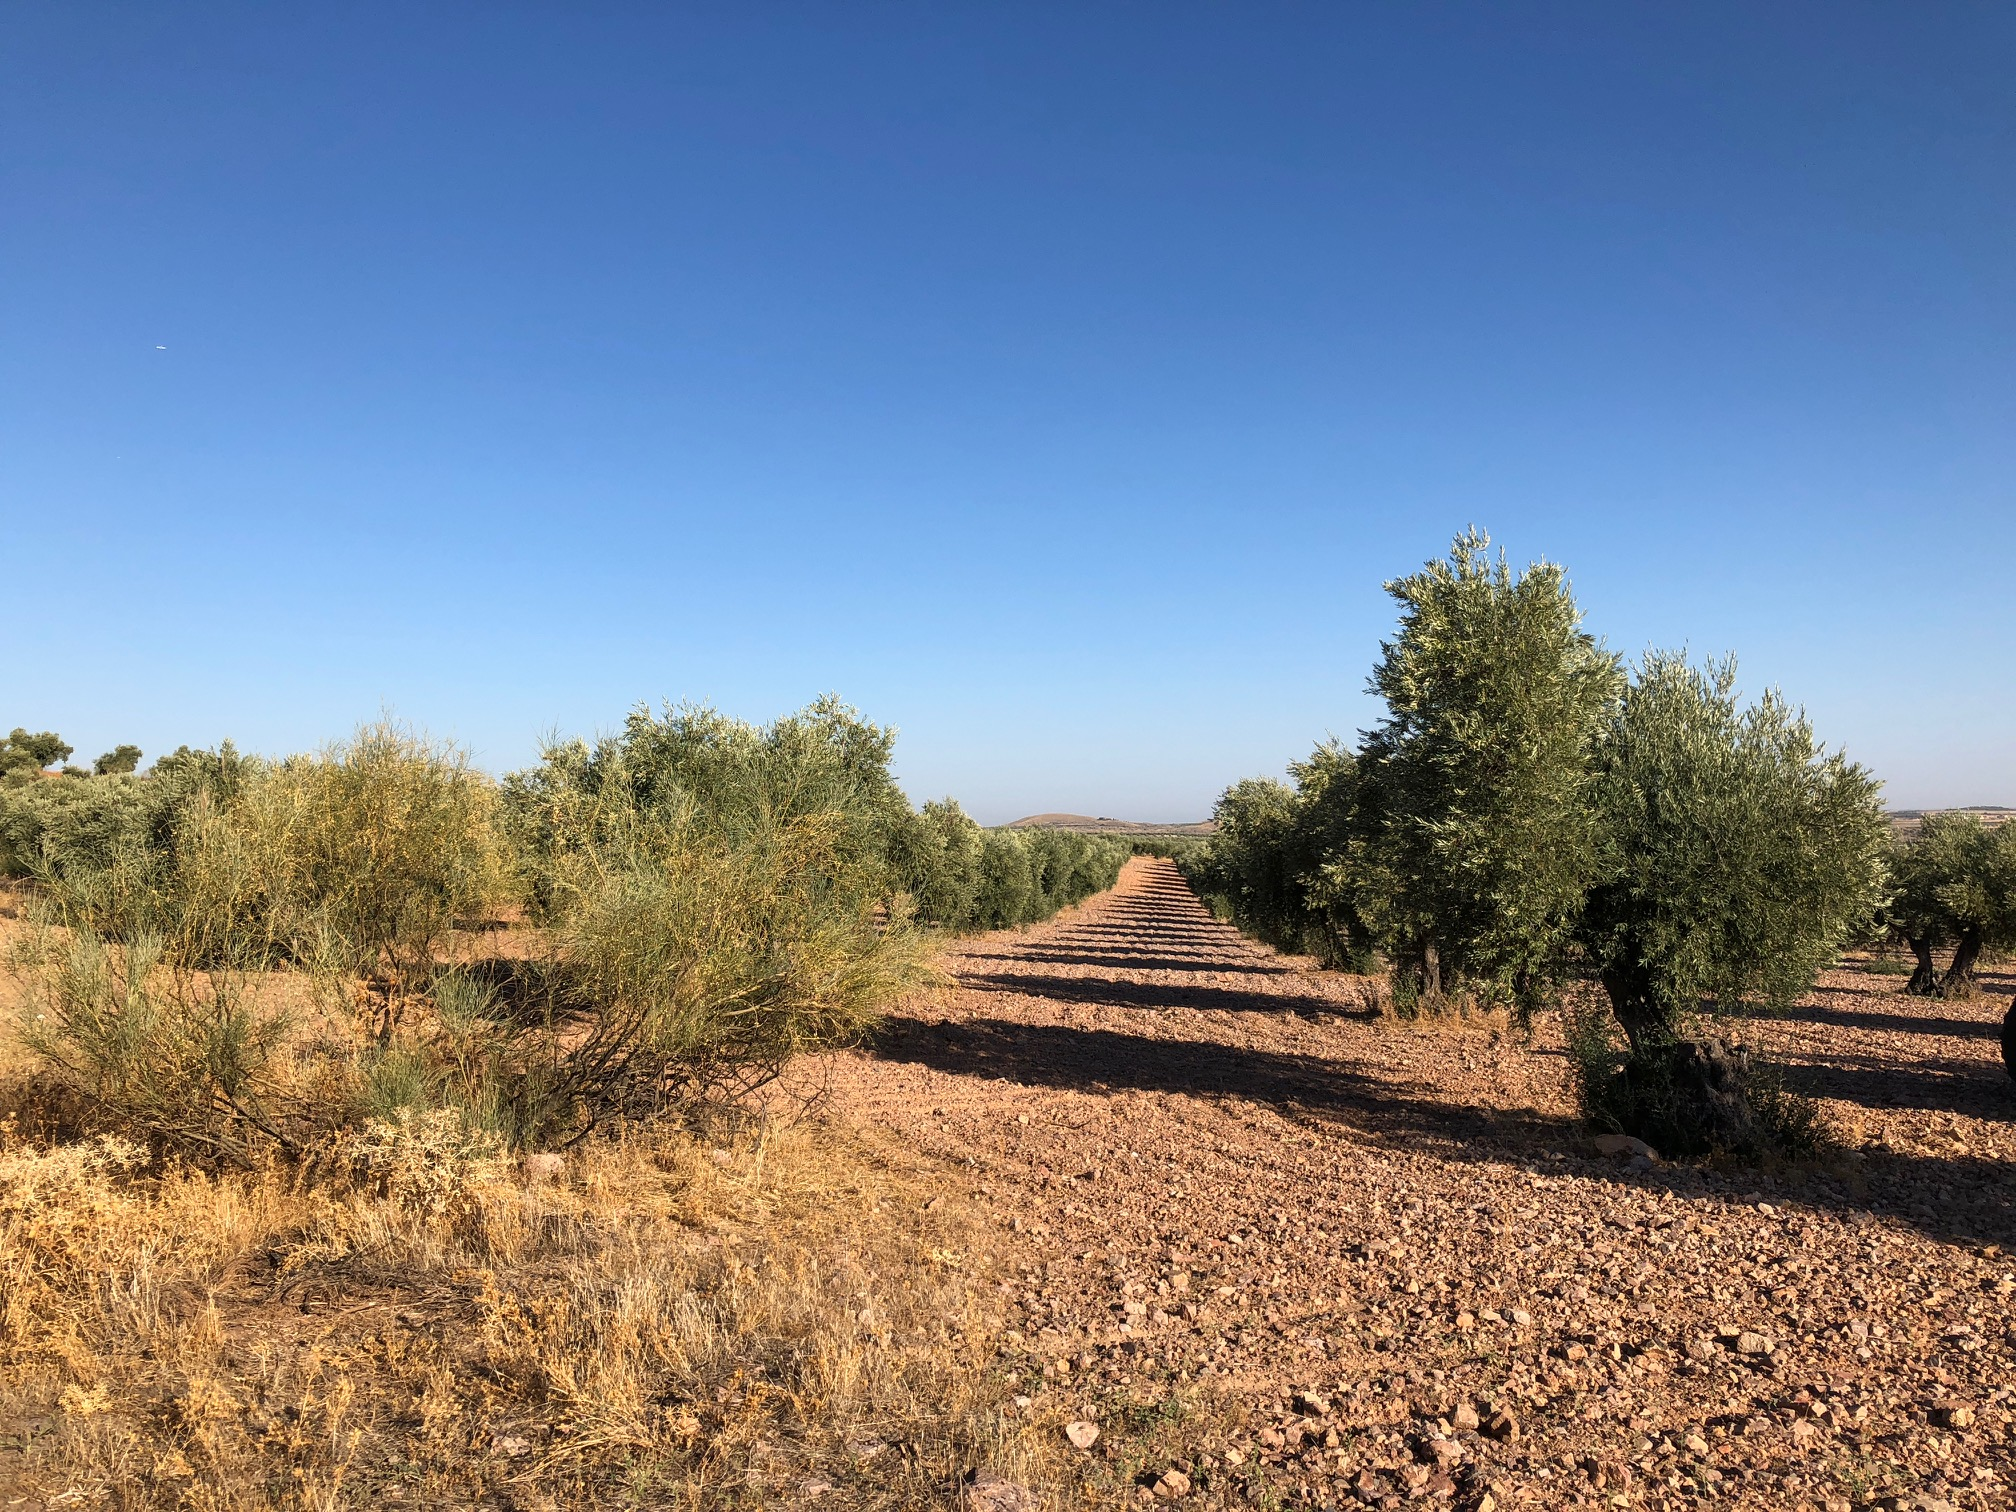 OLIVE GROVES AS FAR AS I COULD SEE